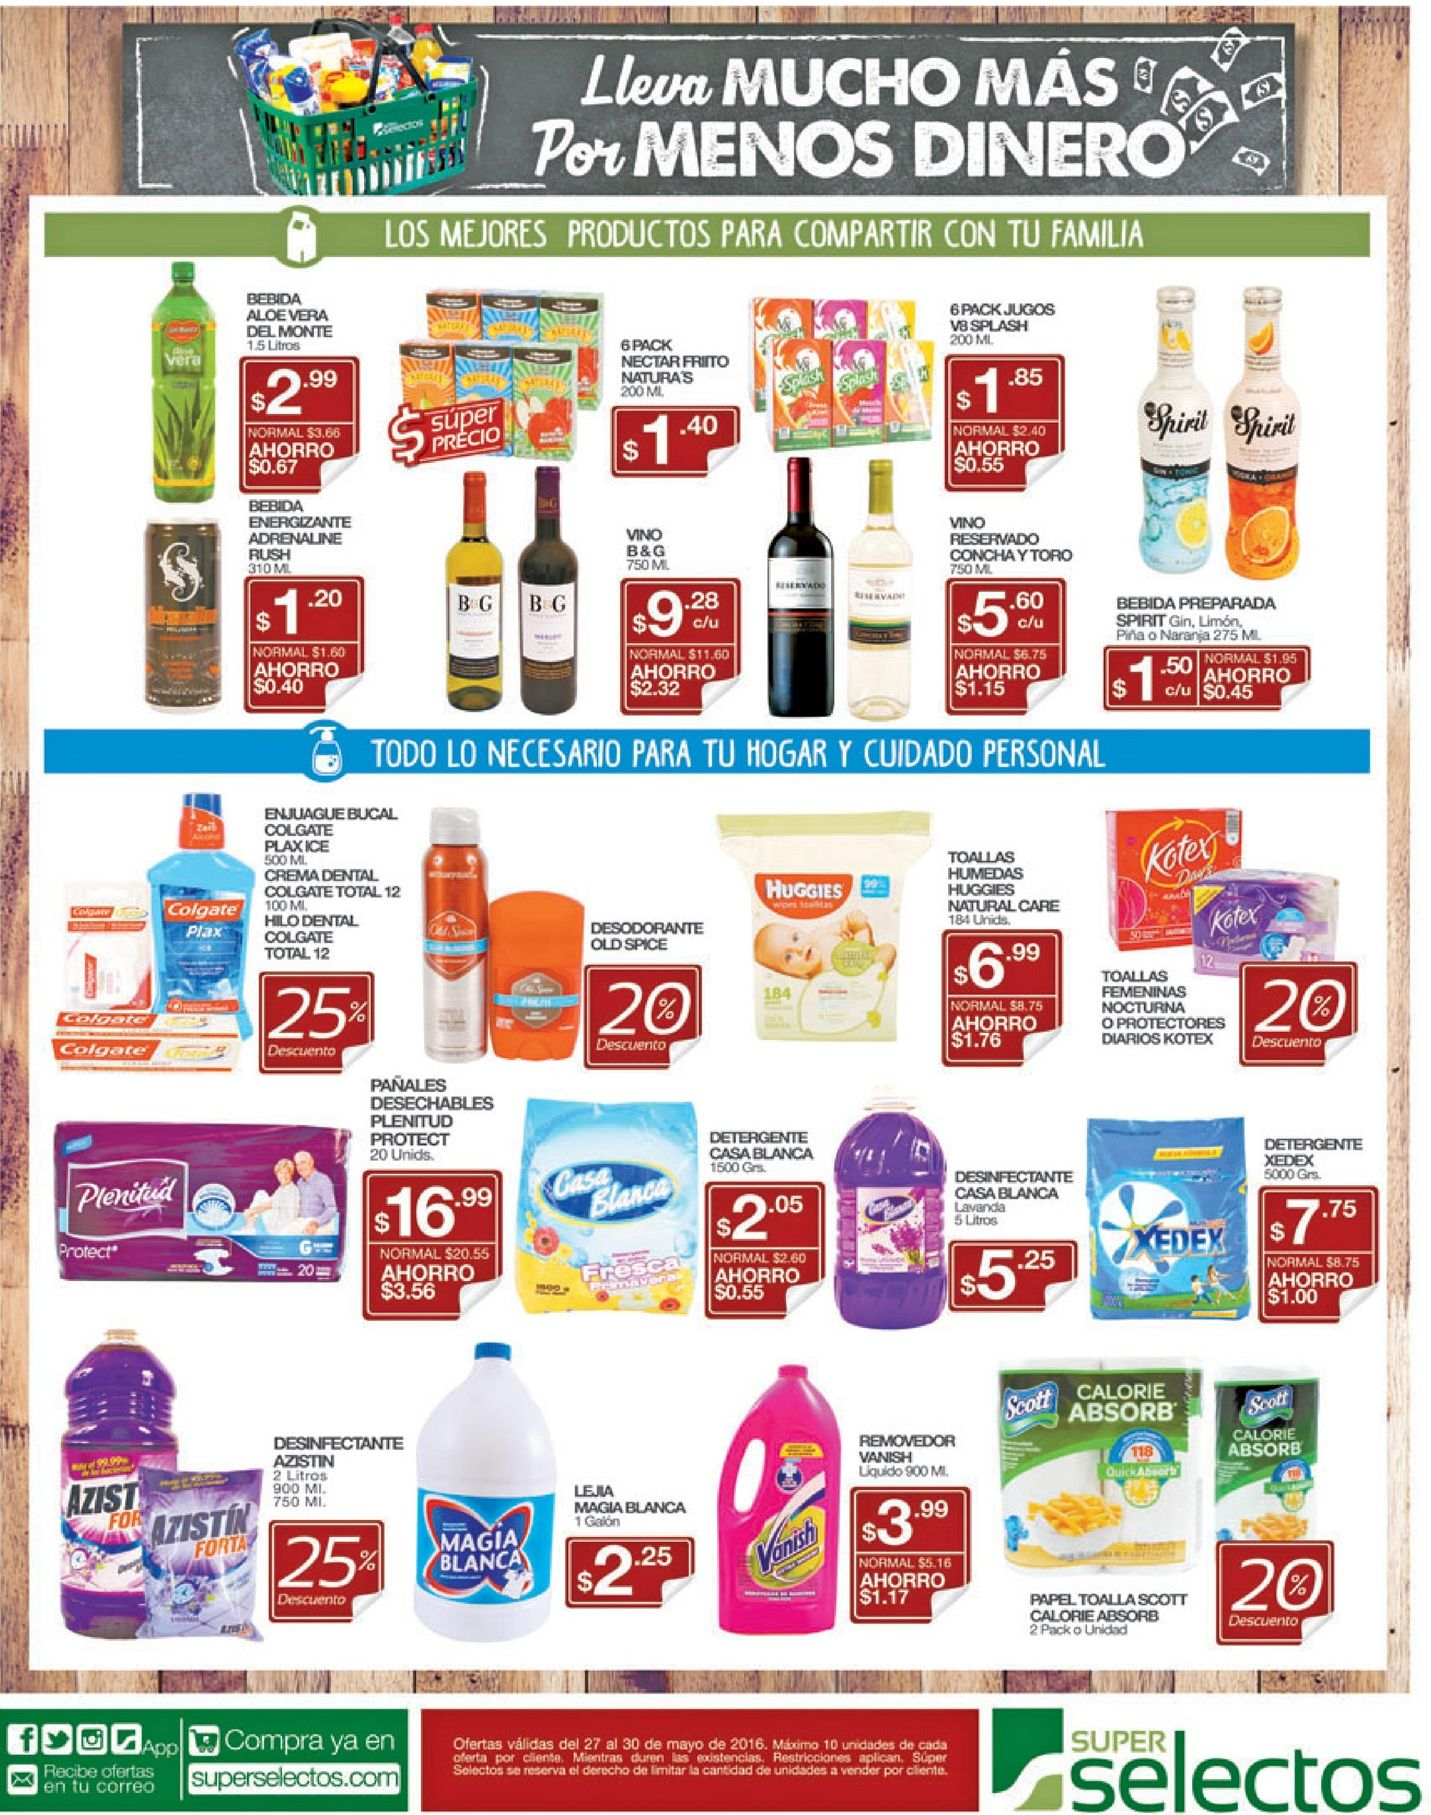 Super descuentos en supermercados - 27may16